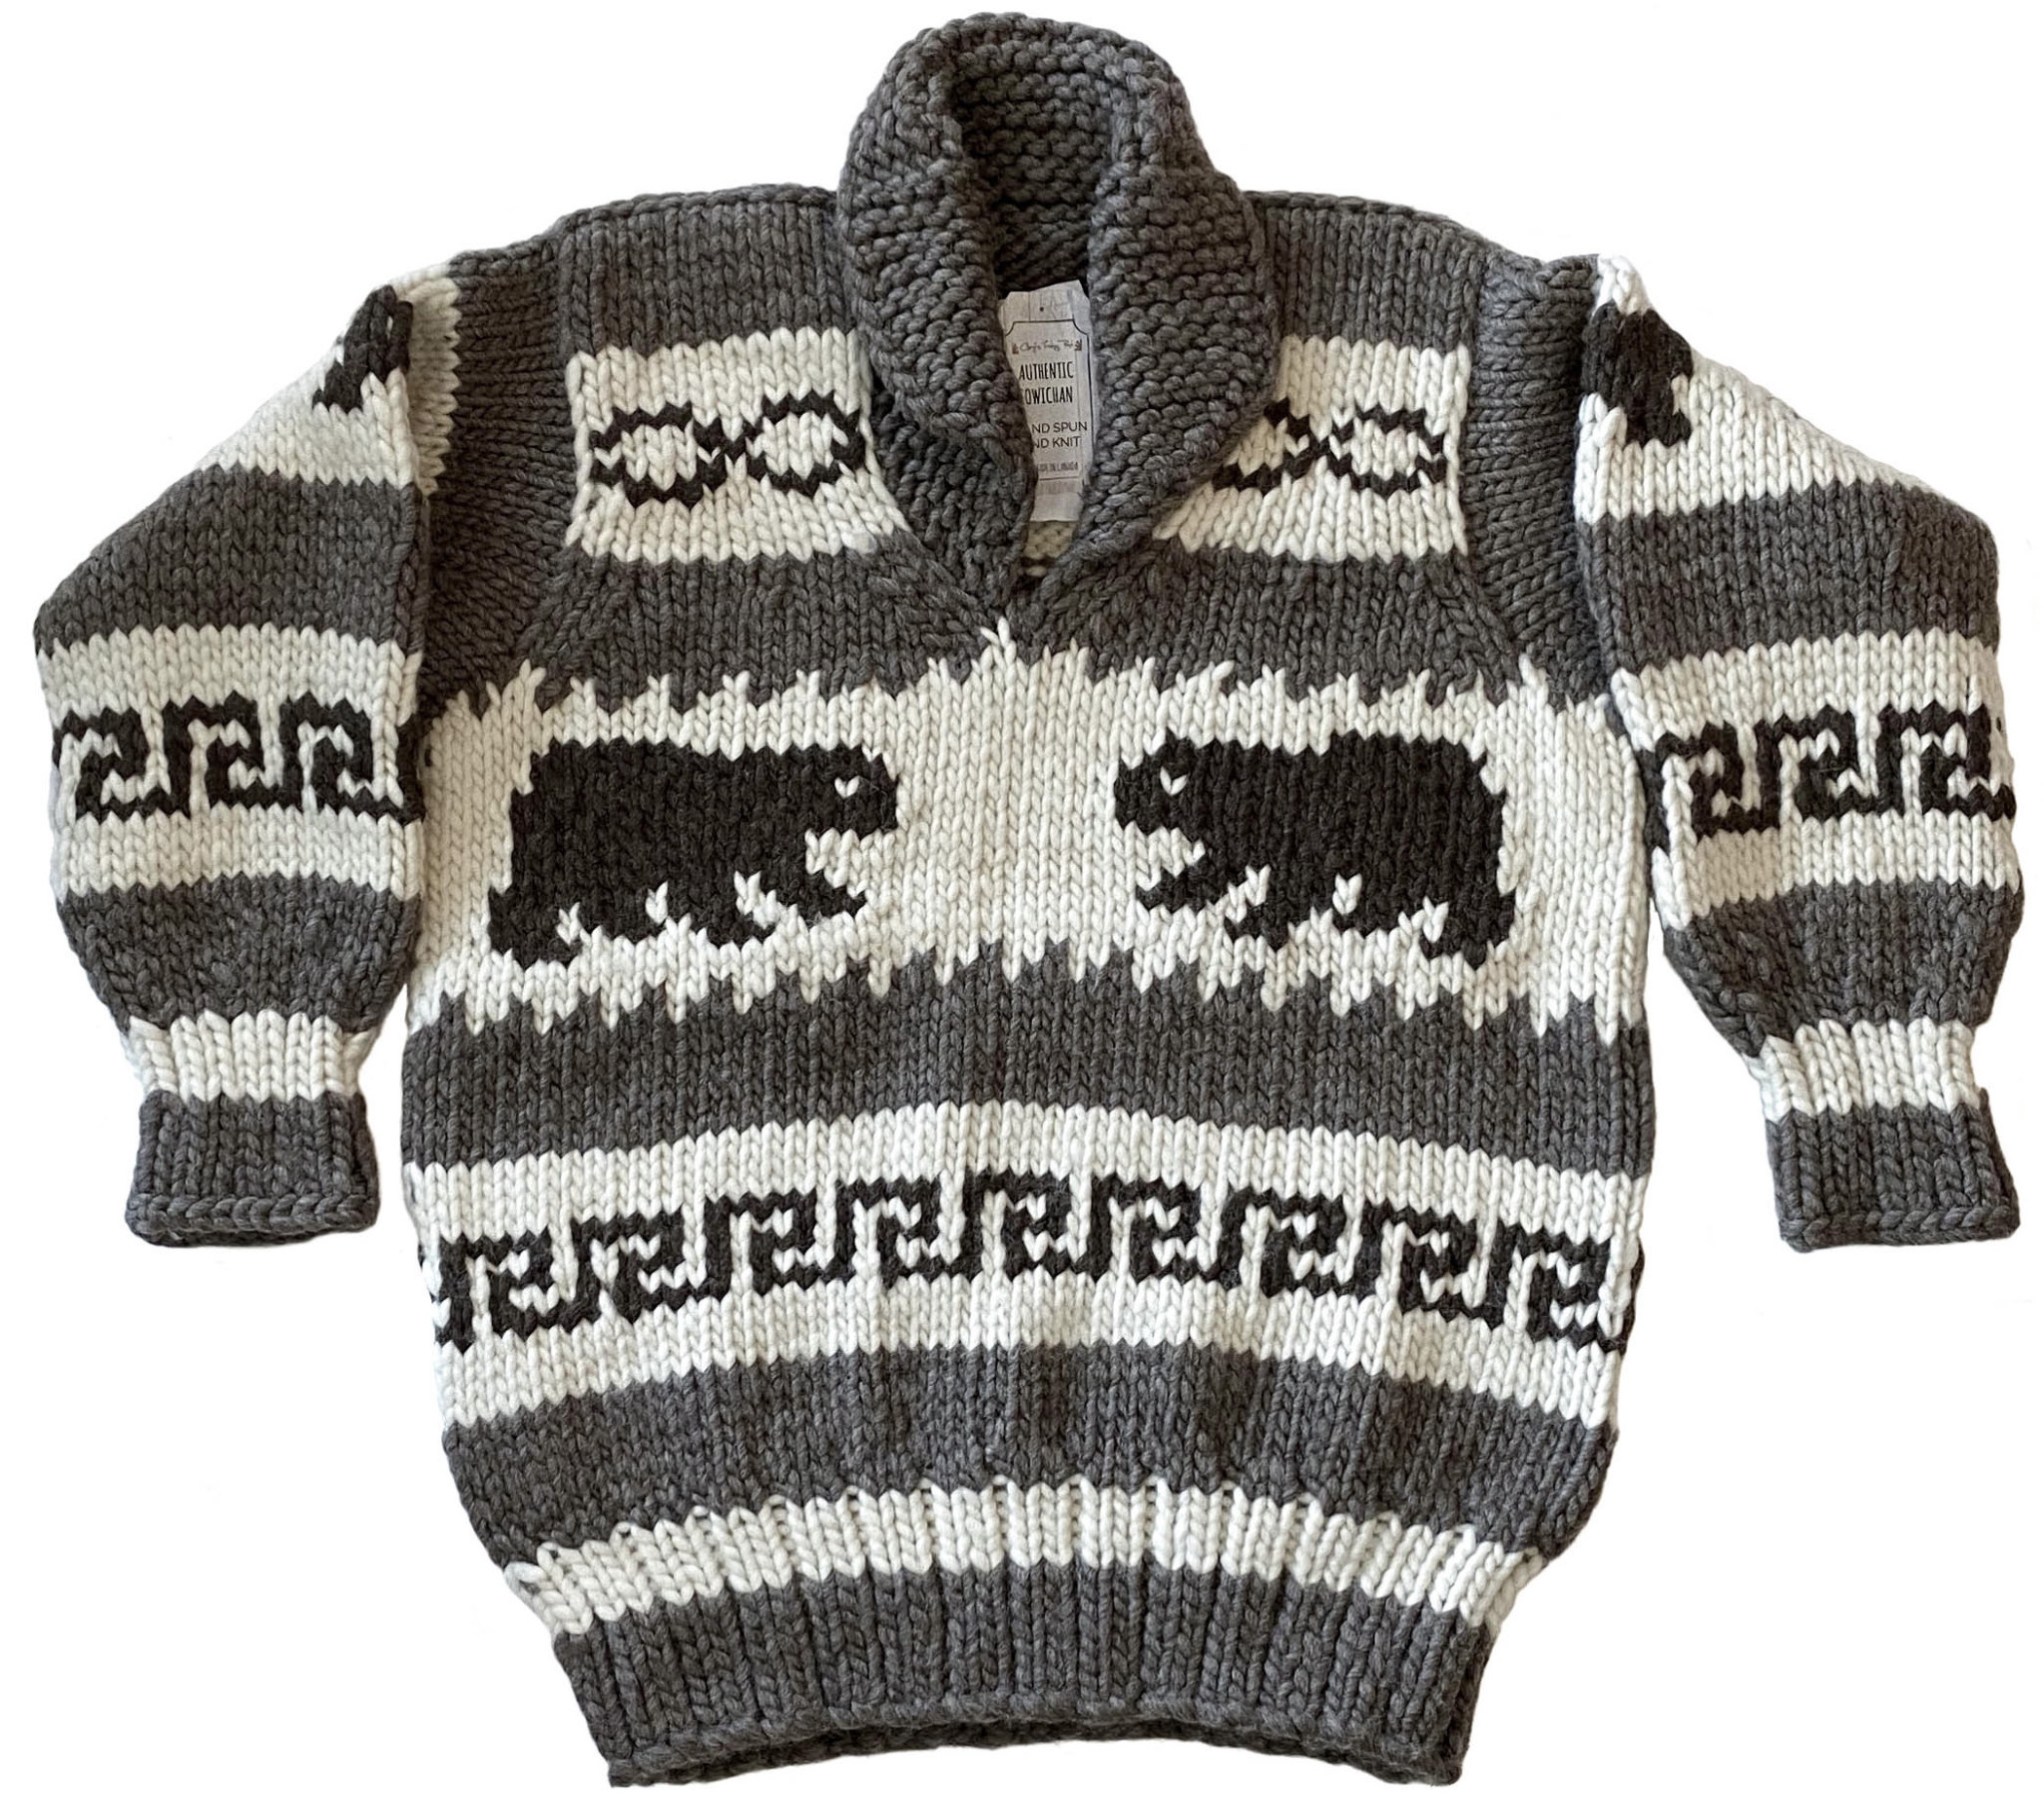 Cowichan Pullover Sweater  - Bears design